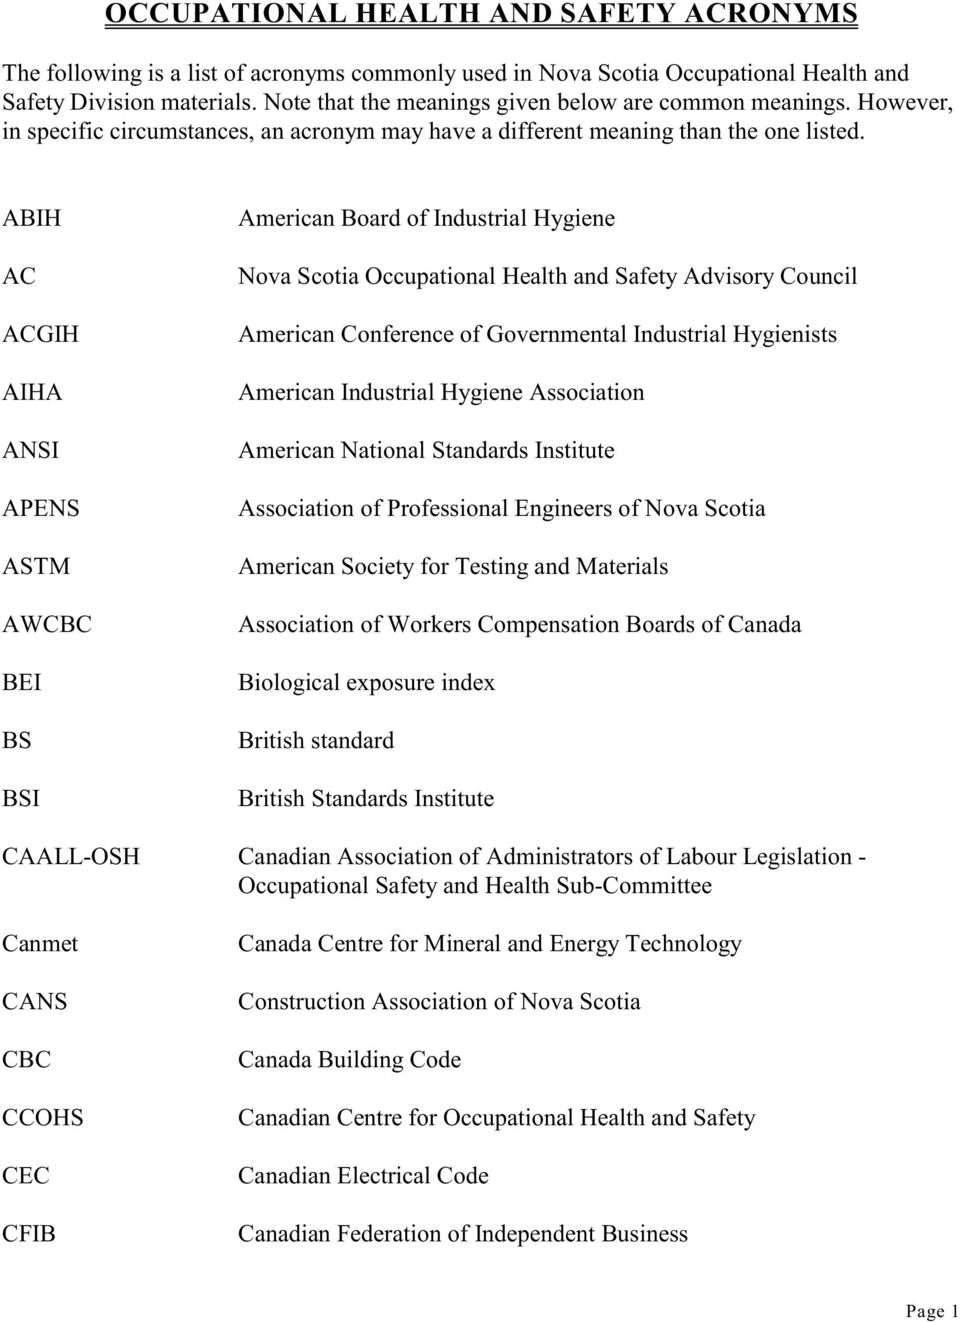 ABIH AC ACGIH AIHA ANSI APENS ASTM AWCBC BEI BS BSI American Board of Industrial Hygiene Nova Scotia Occupational Health and Safety Advisory Council American Conference of Governmental Industrial